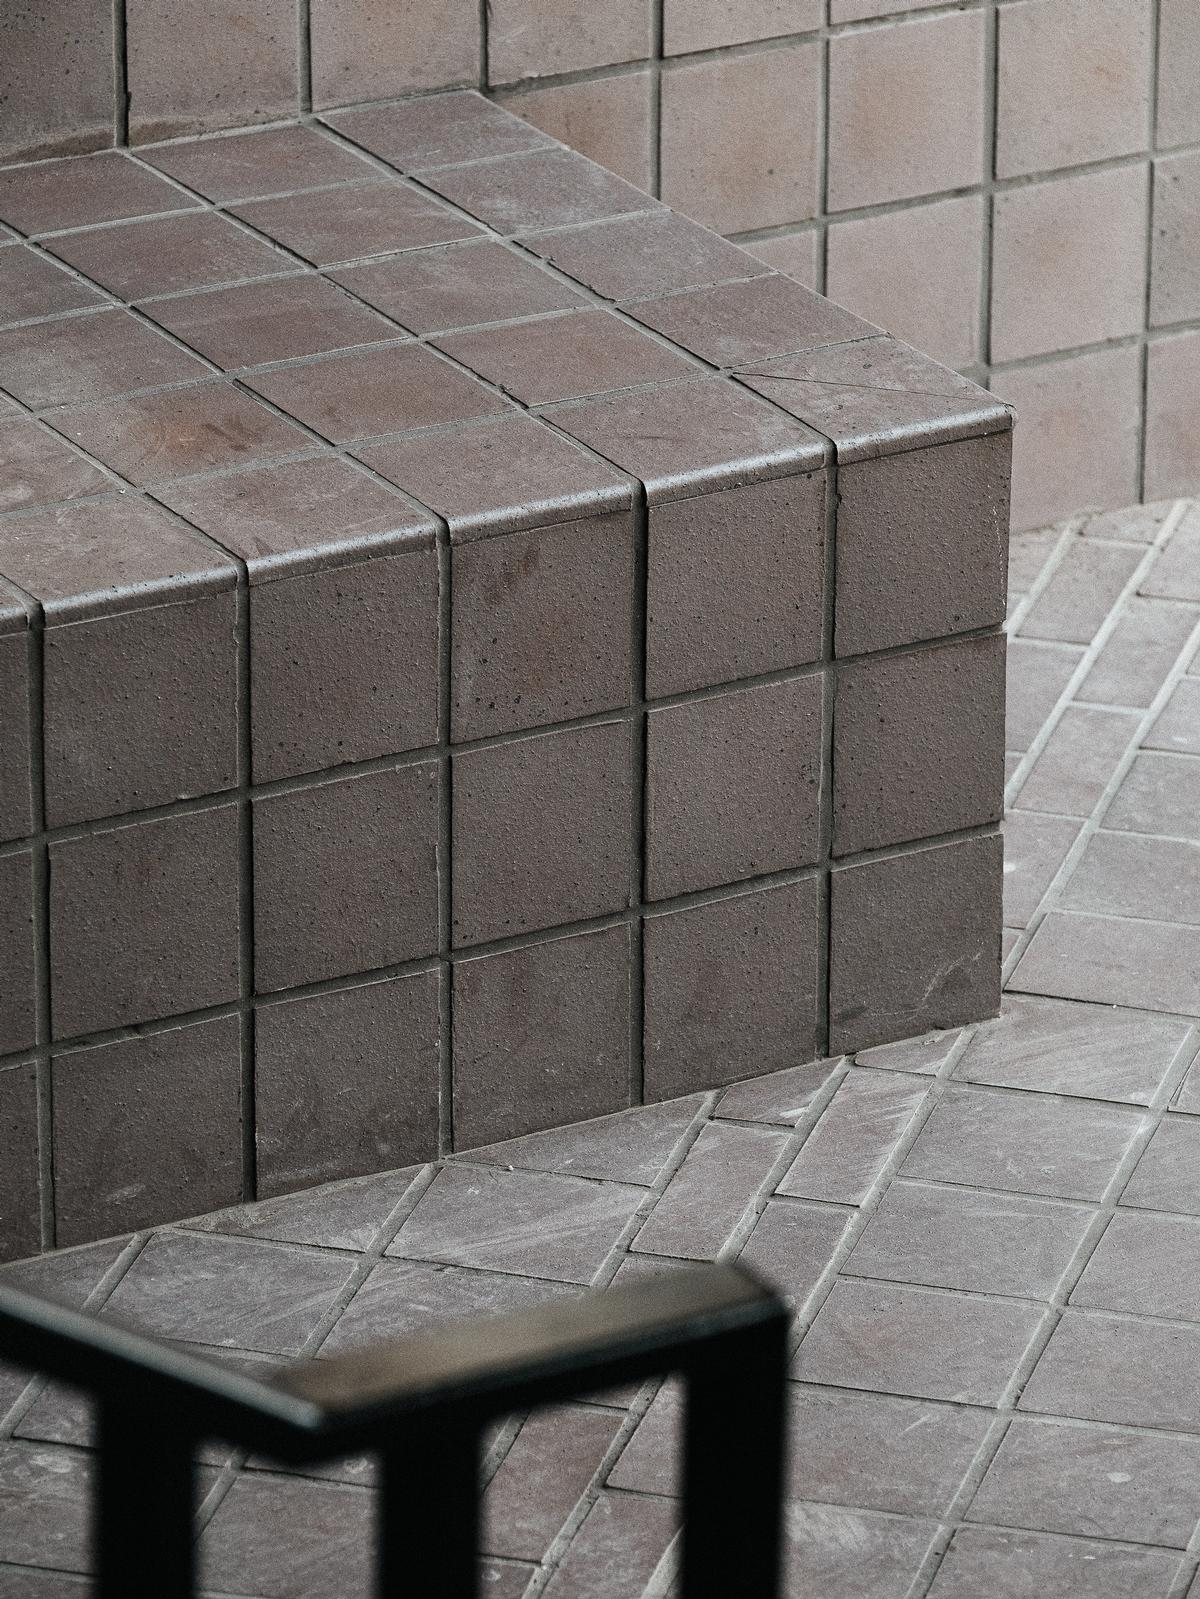 The floor is laid with quarry pavers / Cultureplex